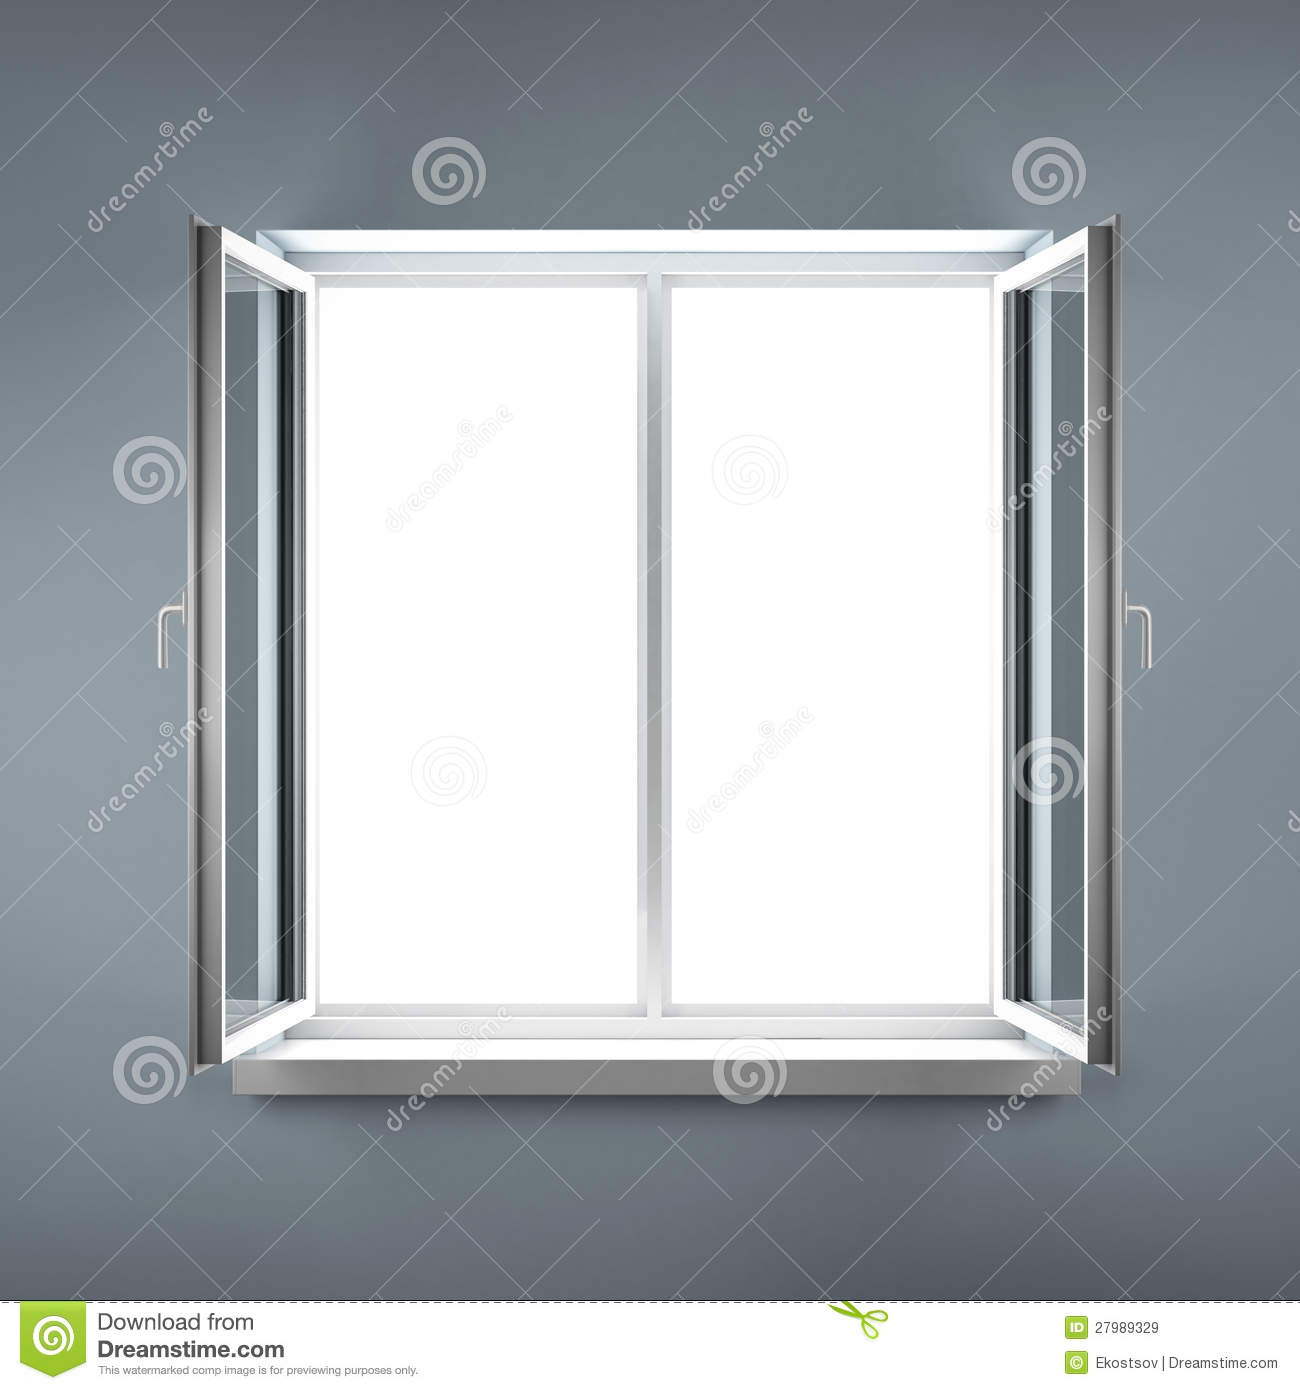 Plastic pvc window on white blank background royalty free for Window plastic